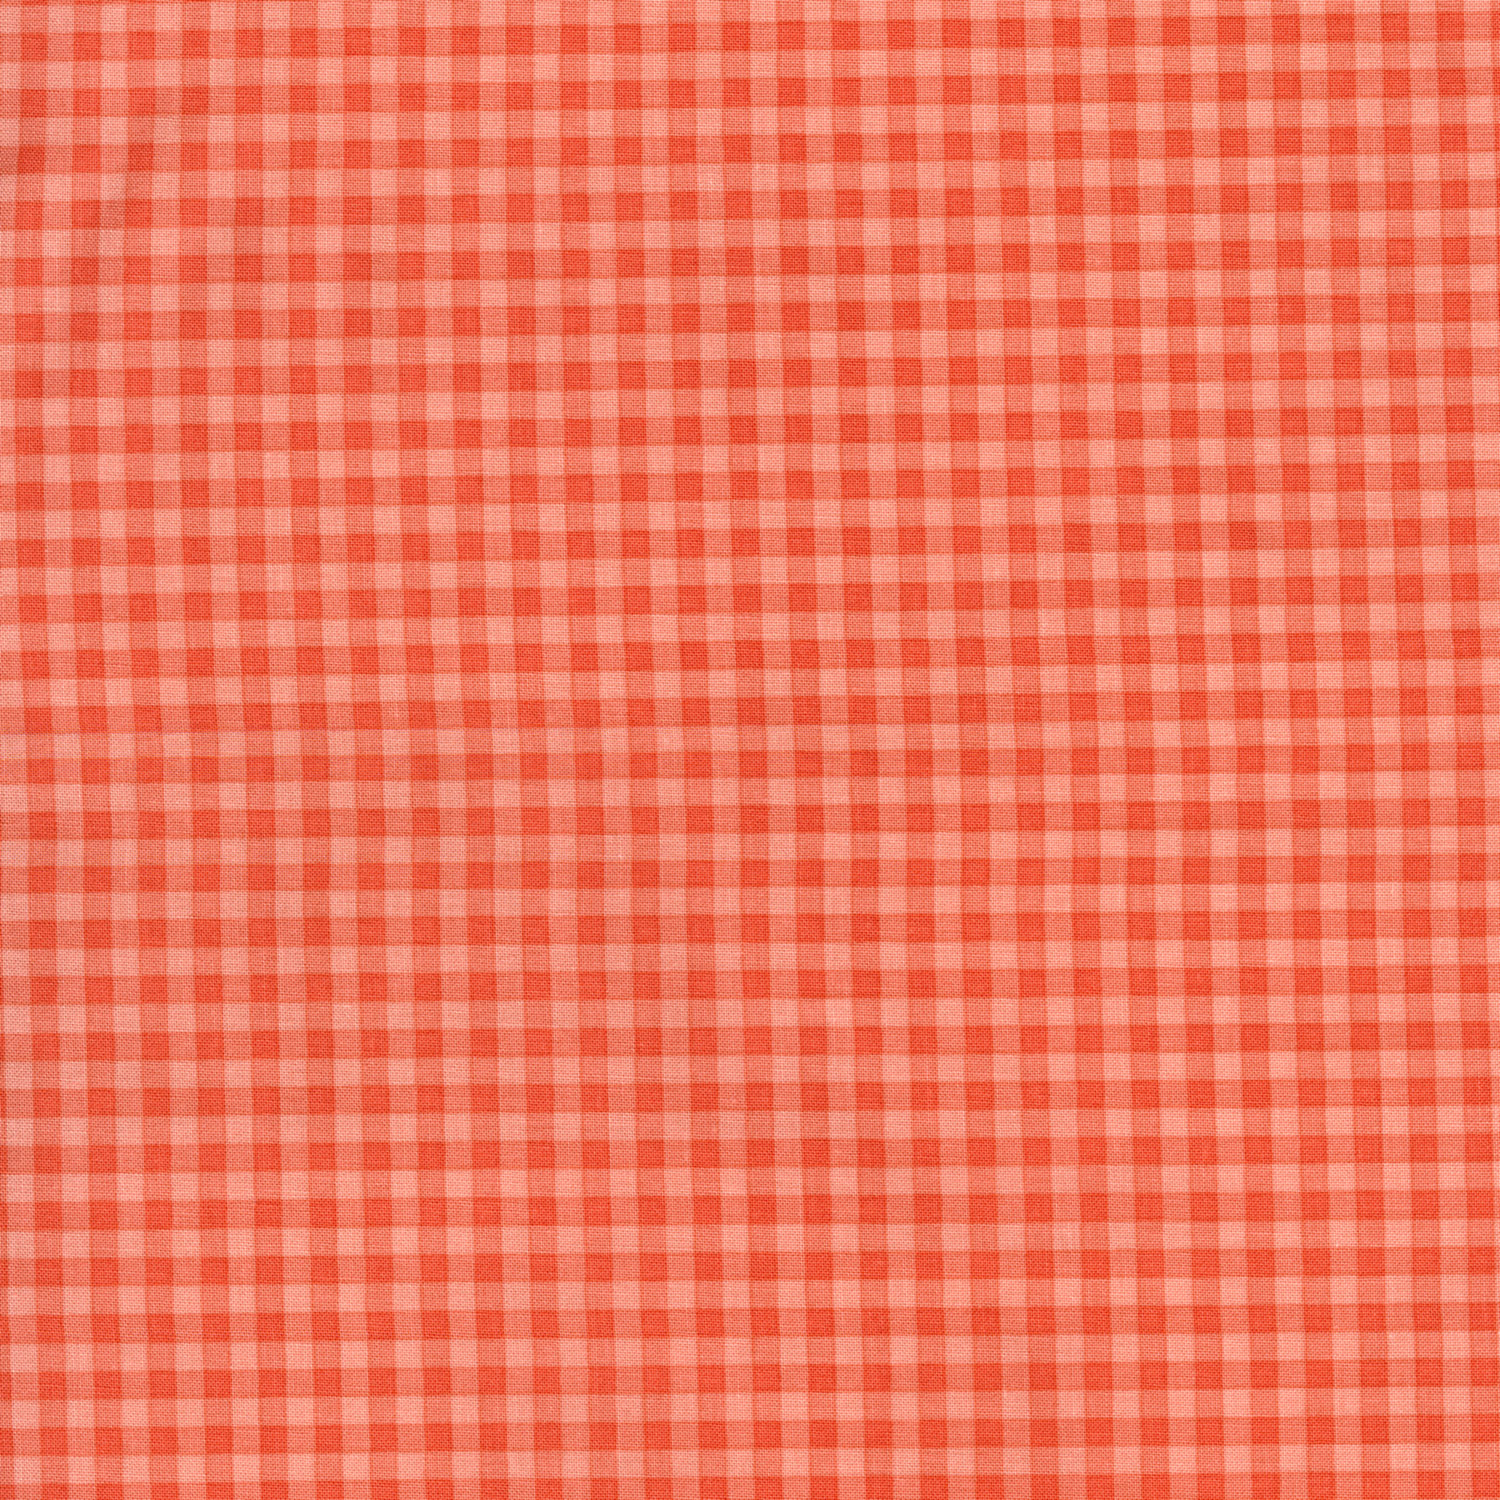 2929-003 SMALL GINGHAM - CORAL